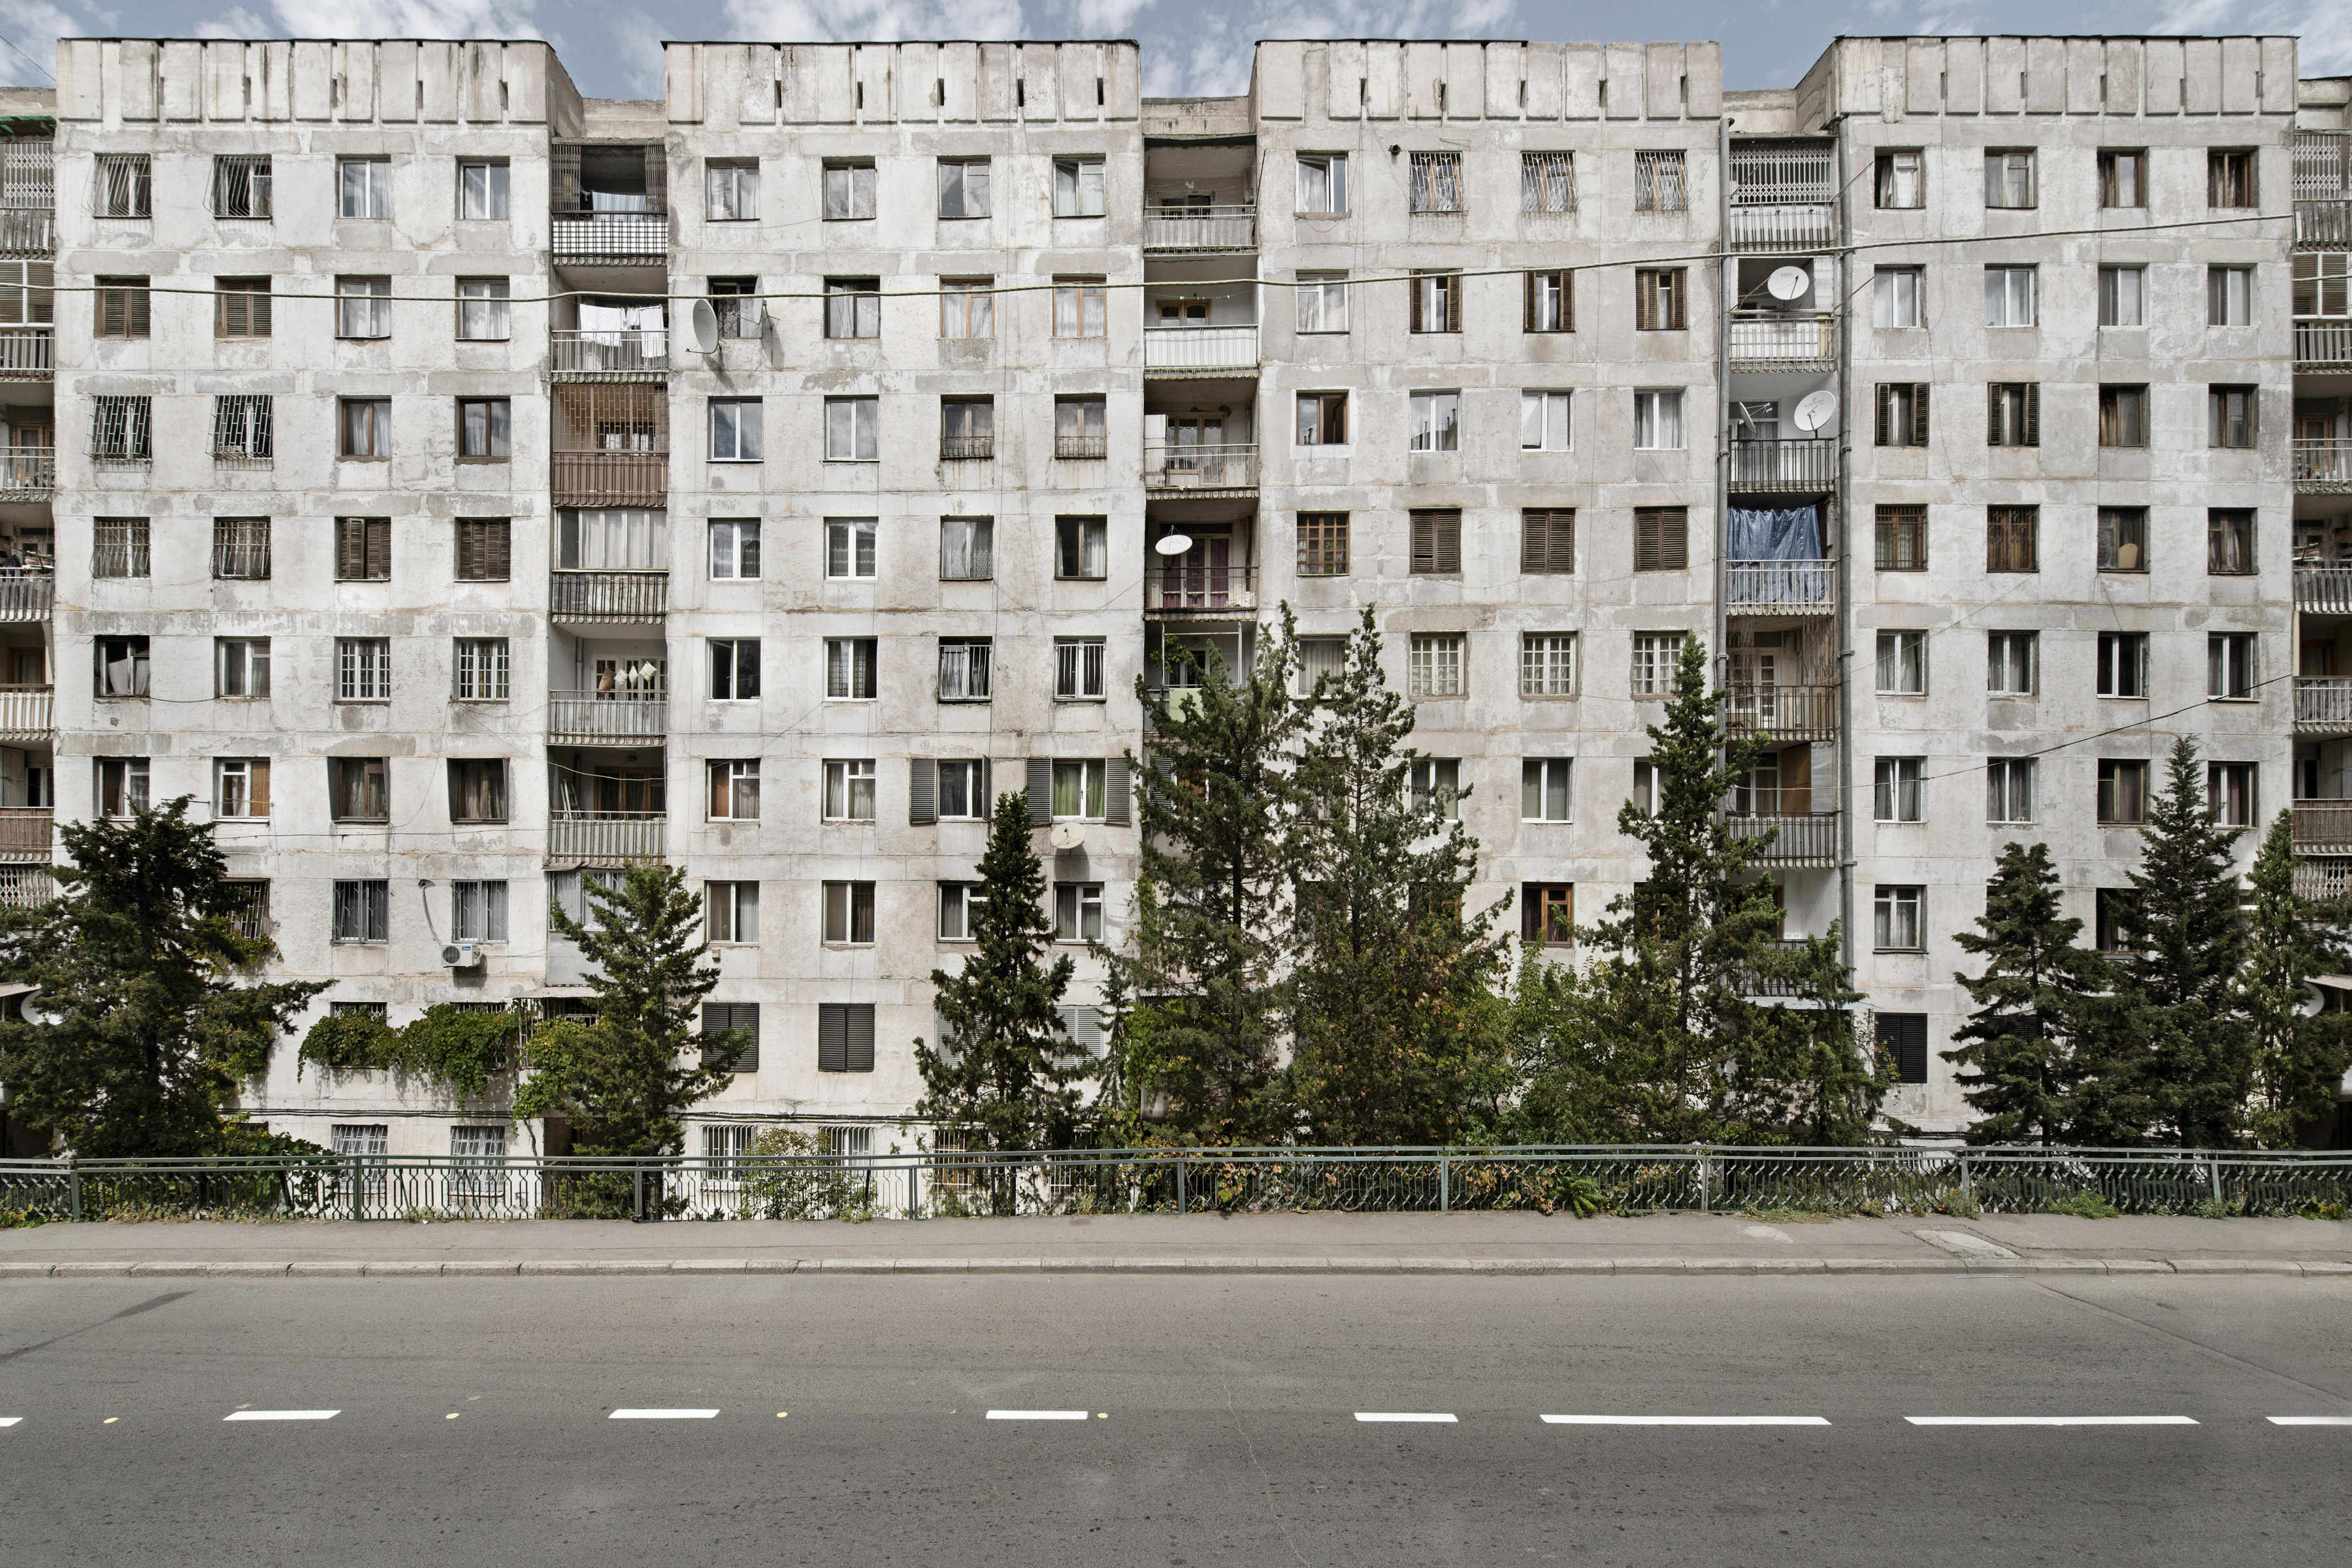 Architecture photo about socialist Soviet architecture in Southern Russia Crimea and Georgia